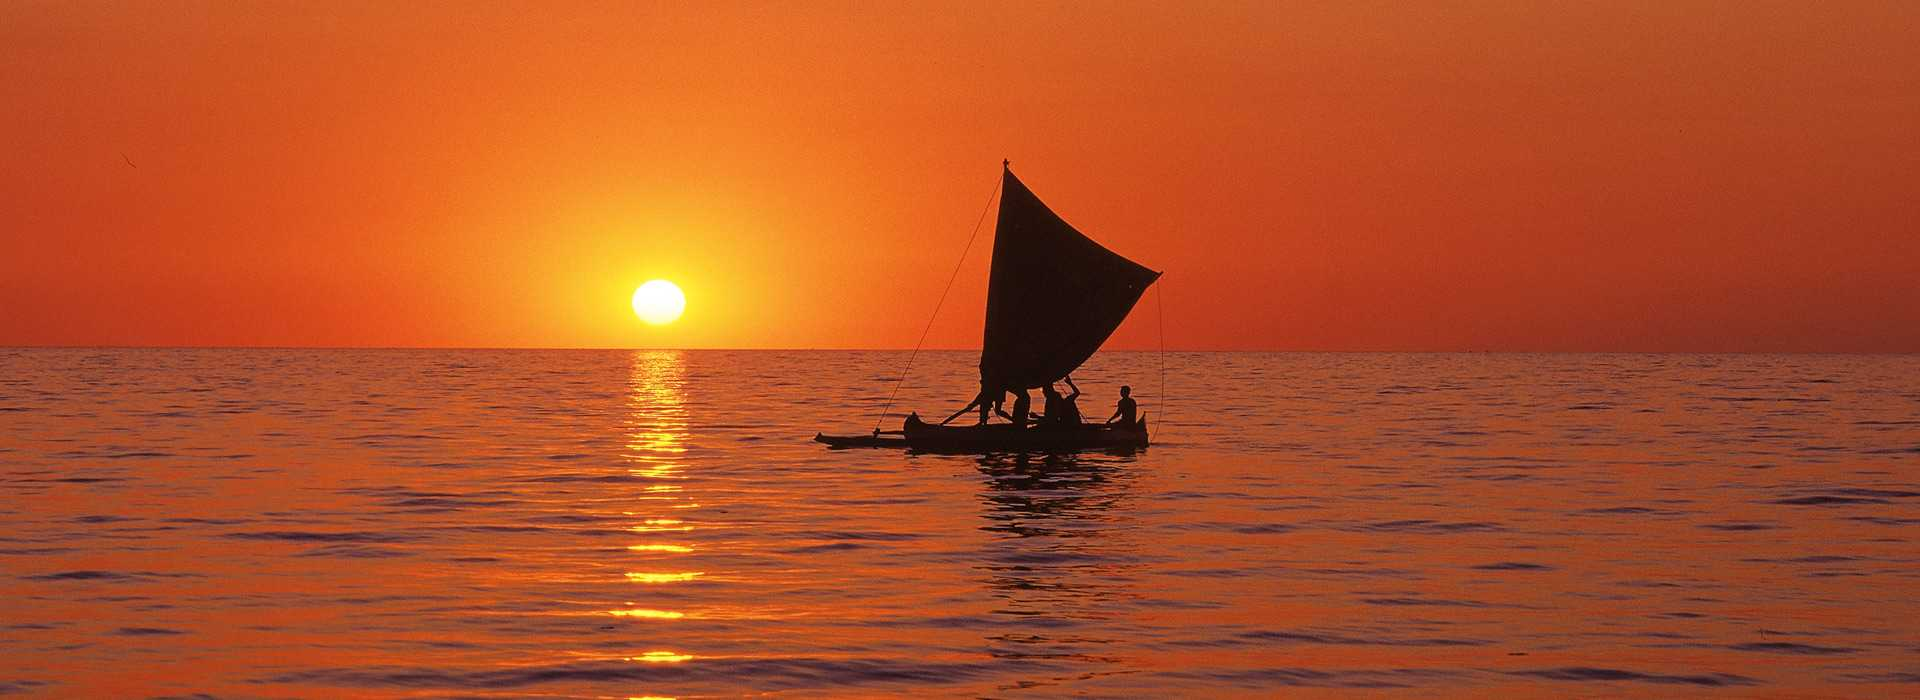 Fiery Sunset With Dhow On The Water